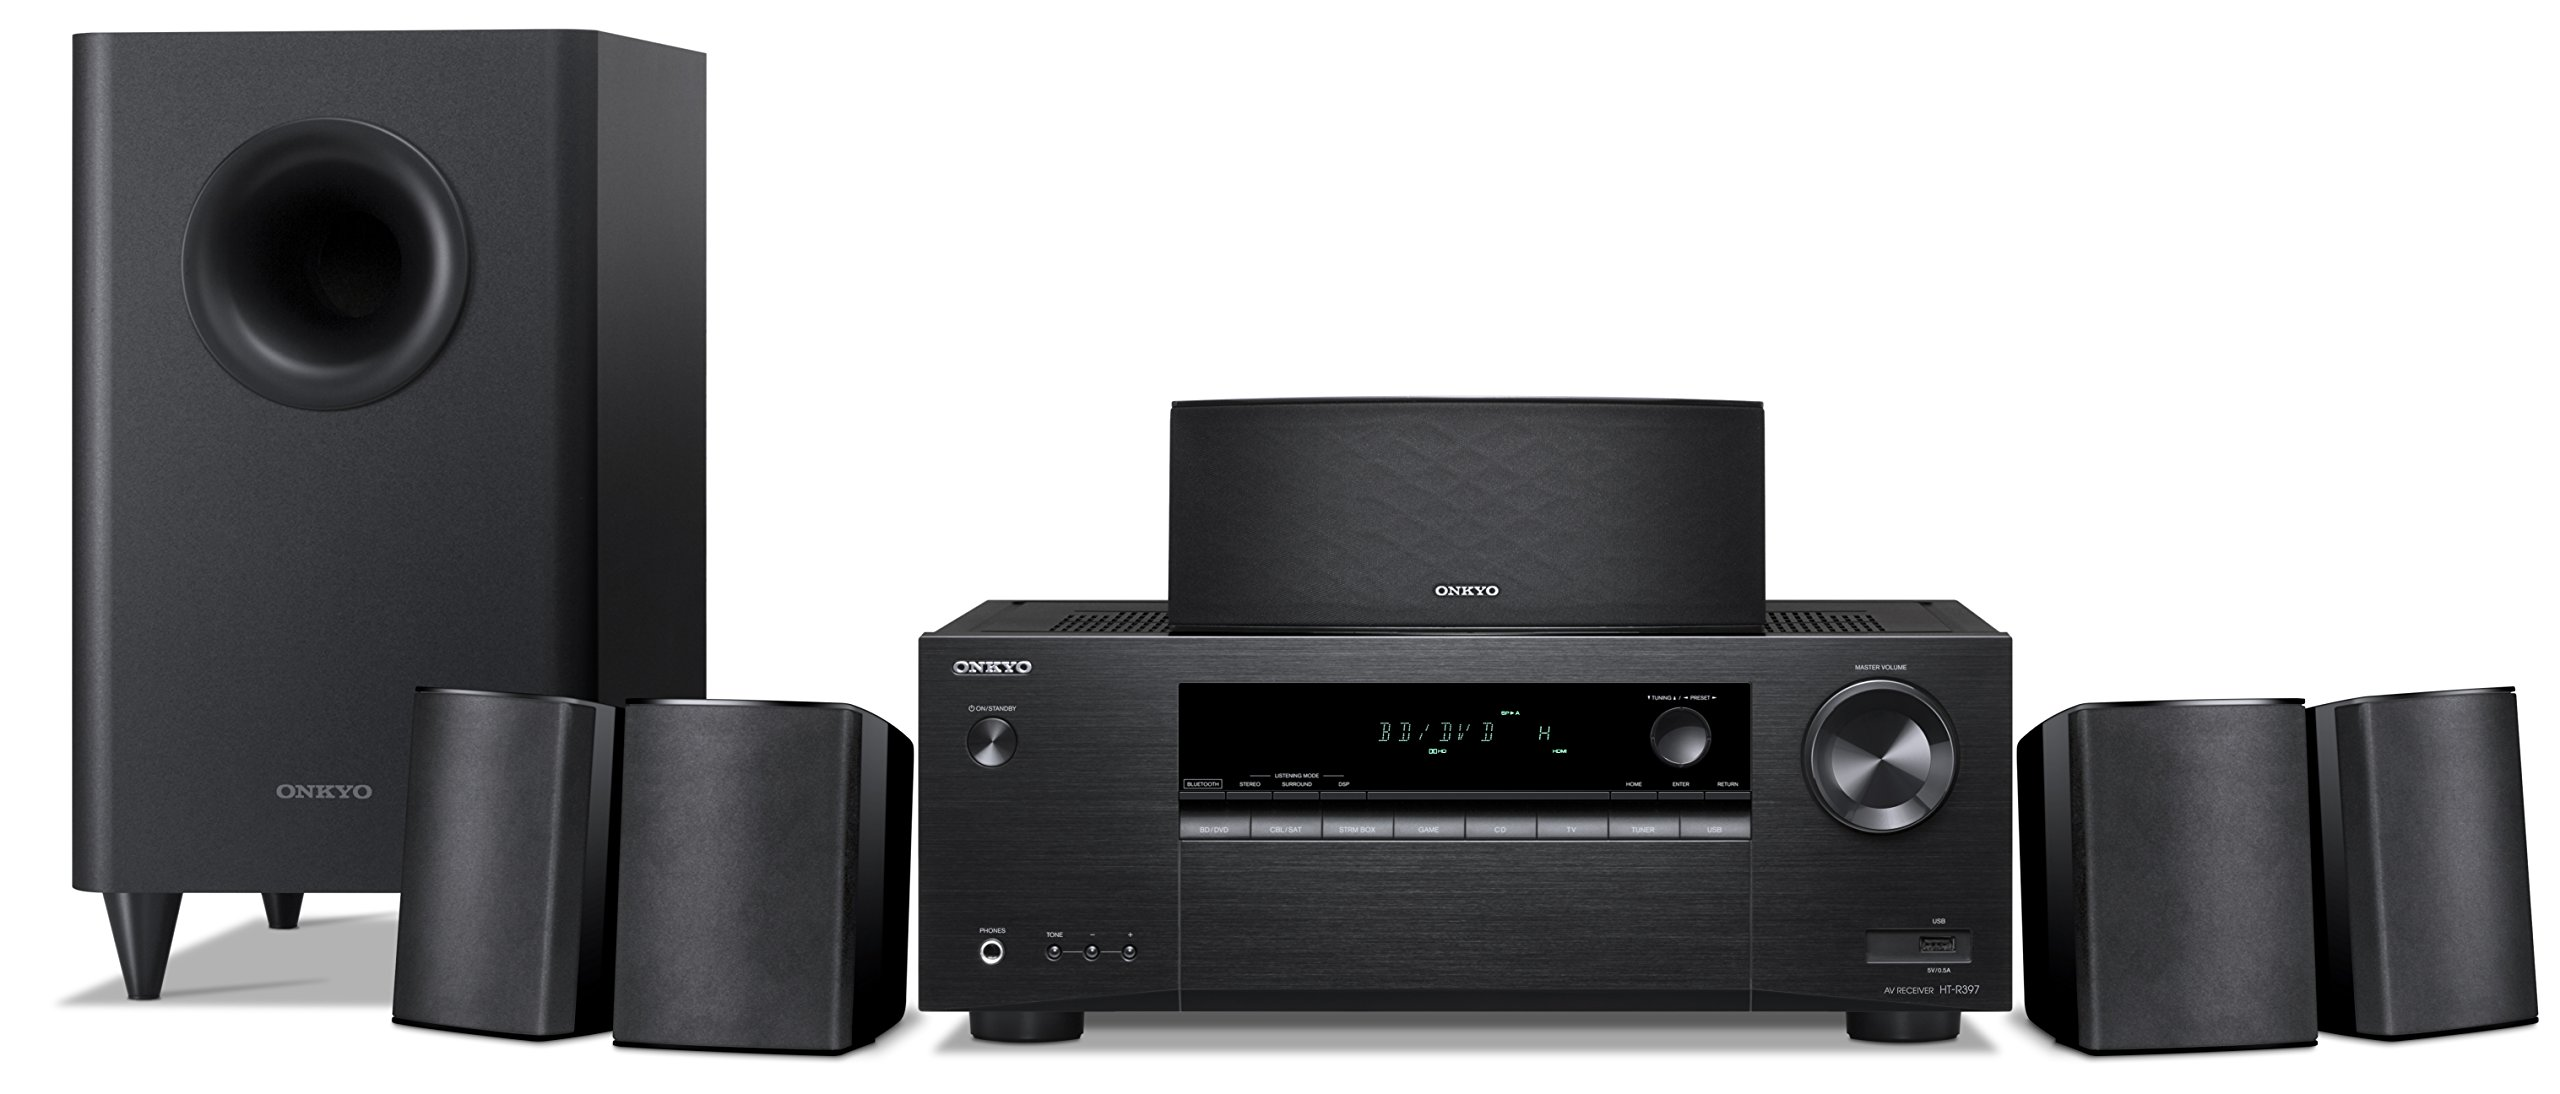 Onkyo 5.1 6-Channel Surround Sound Speaker System, black (HT-S3900)